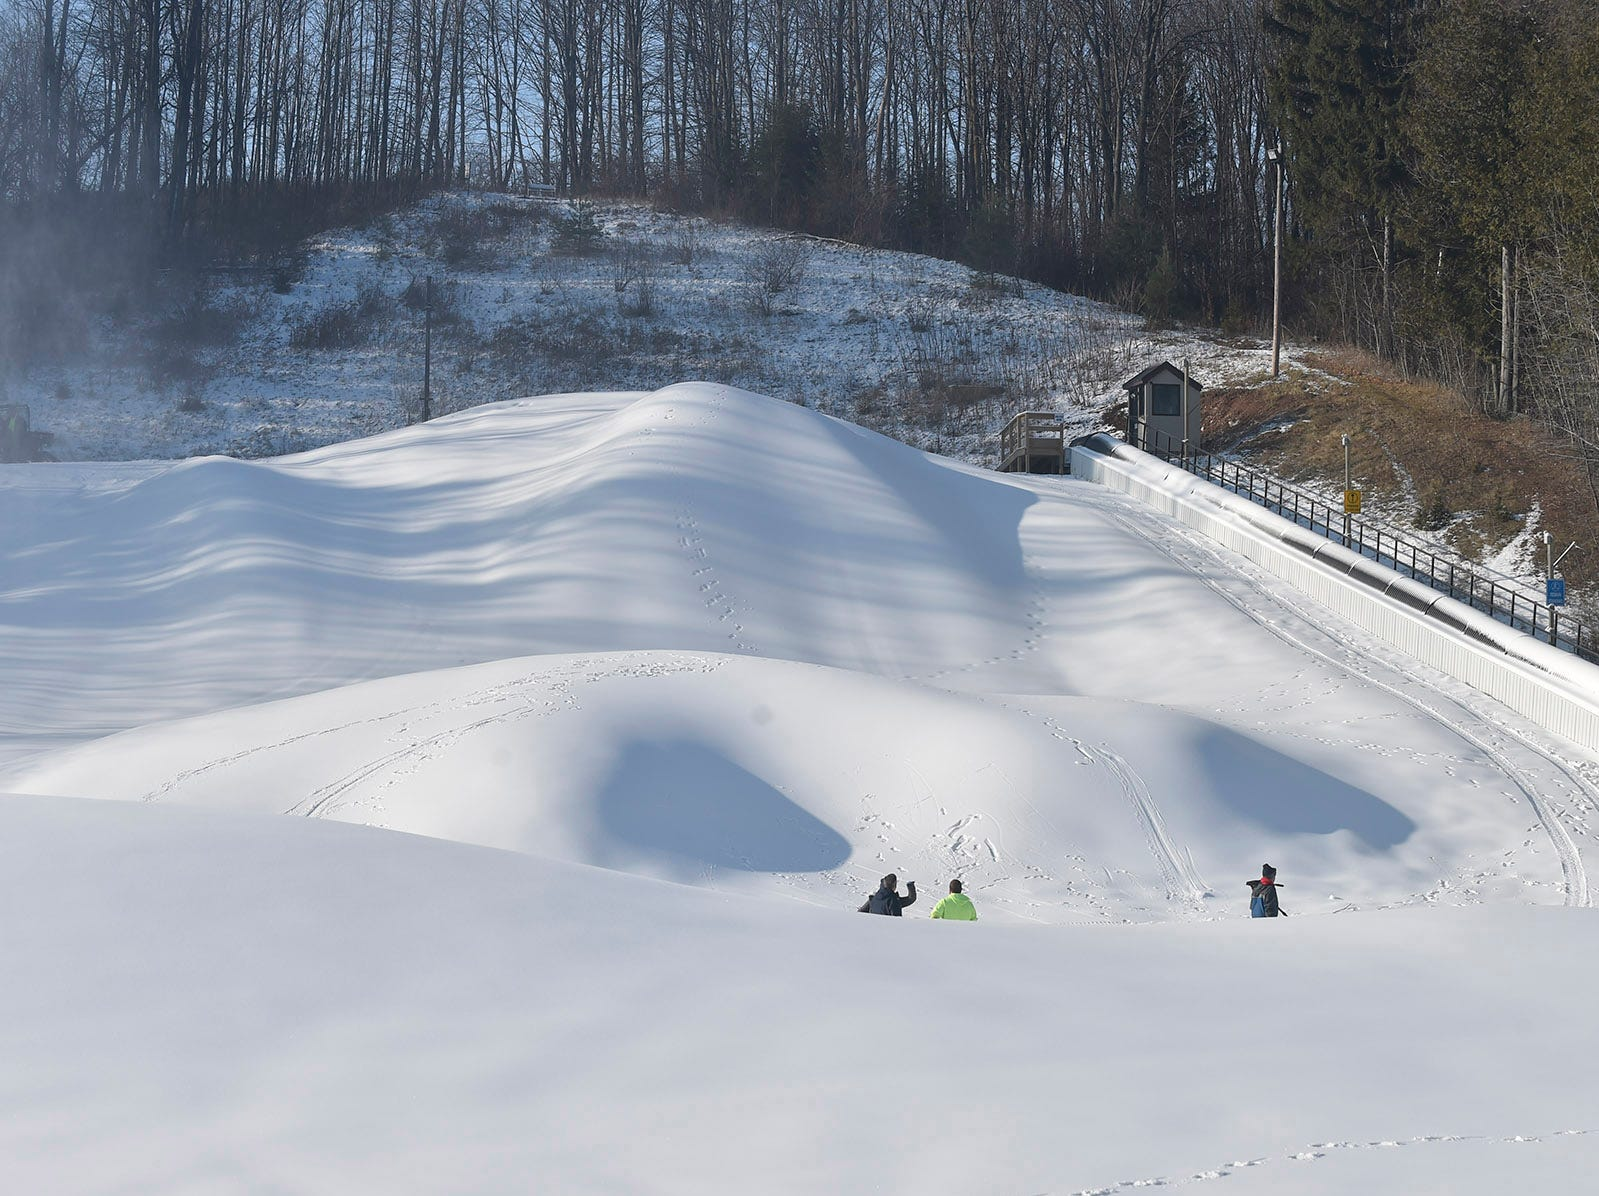 A view looking to the top of the kid-friendly tubing hill at Winter Park. Snow grooming machines will create five lanes for the tubing. At right is the Magic Carpet conveyor lift that was installed last year. Tina M. Gohr/USA TODAY NETWORK-Wisconsin